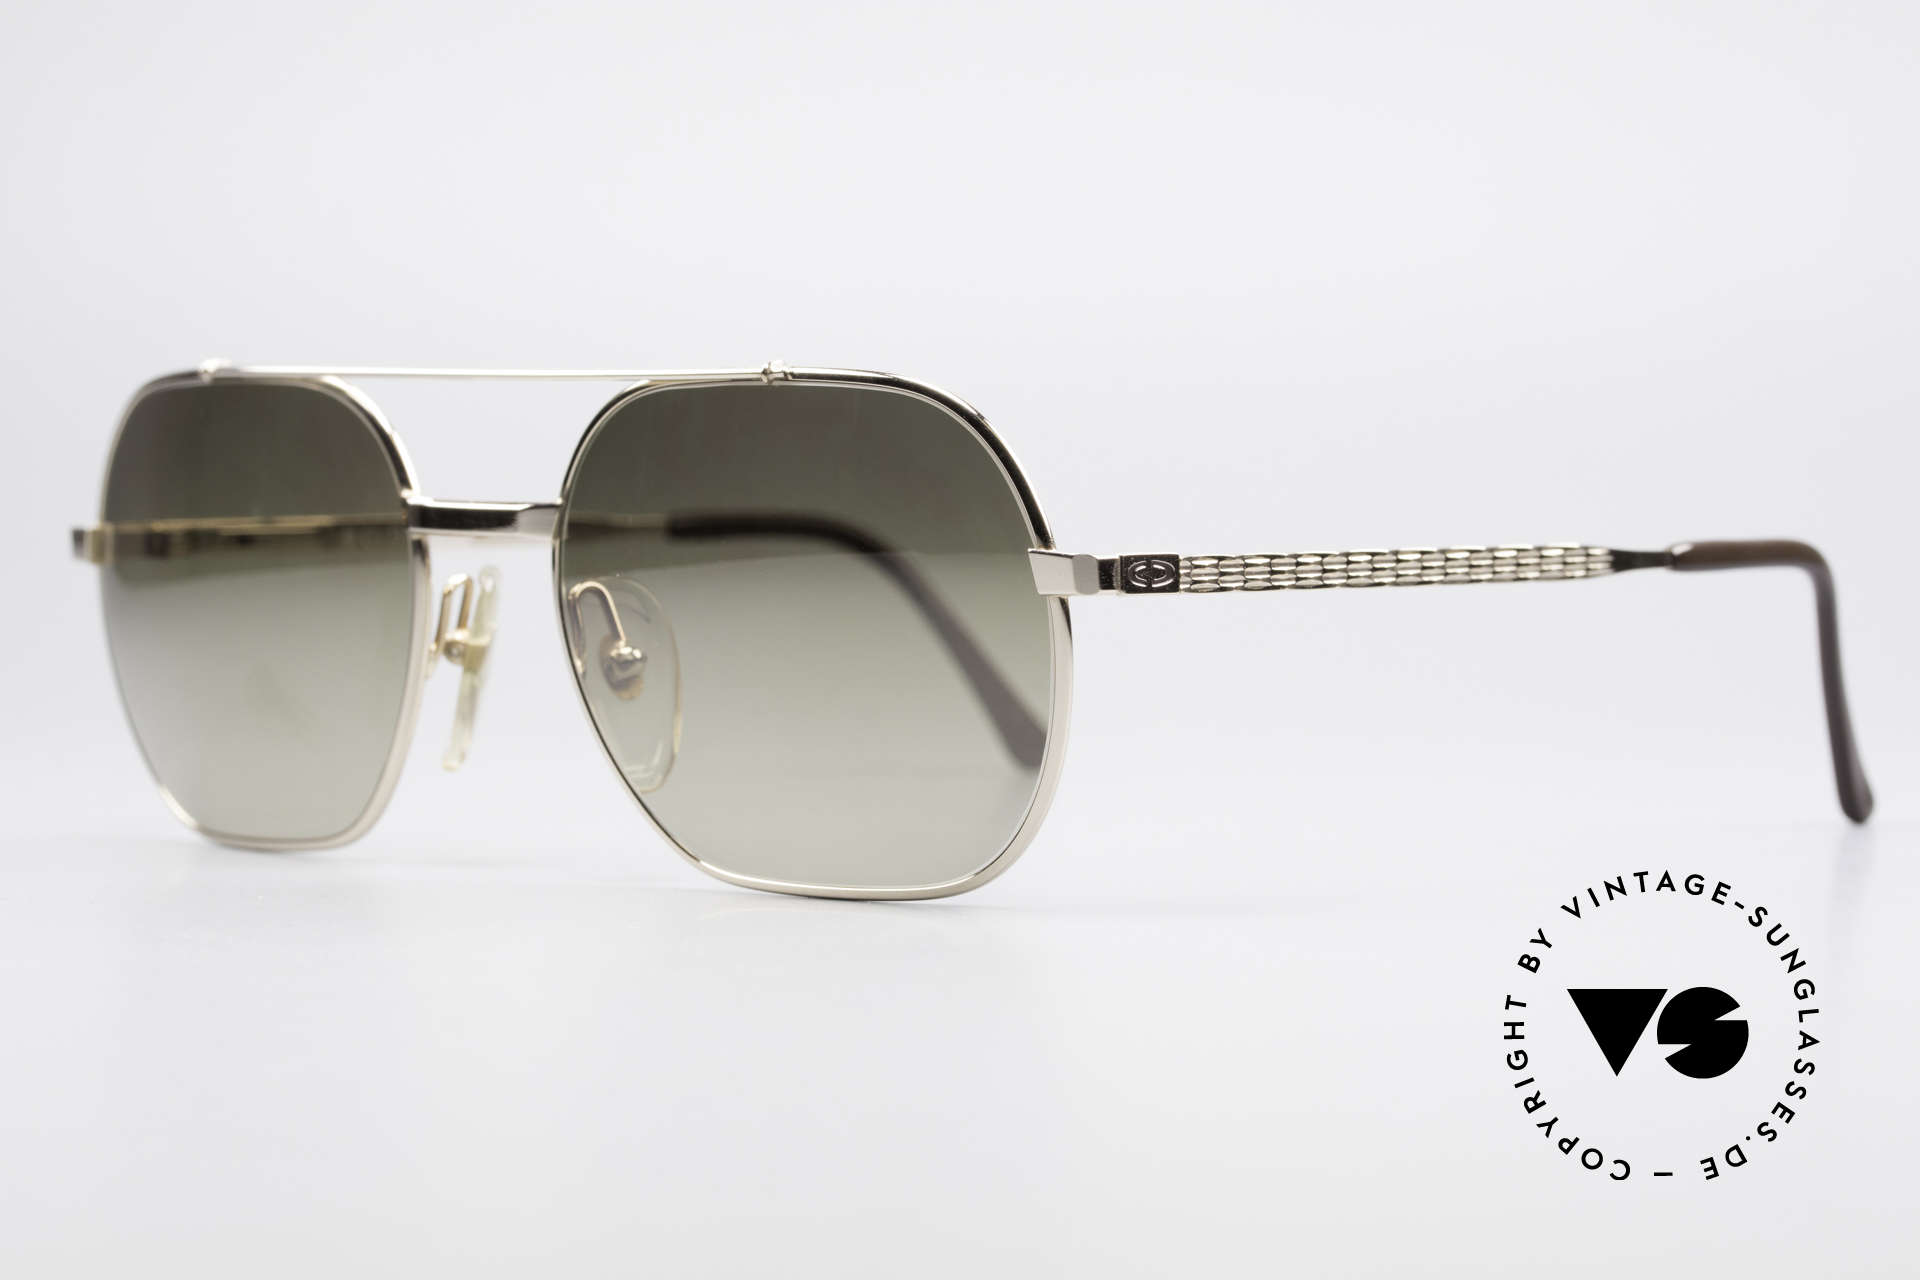 Christian Dior 2357 Legendary Monsieur Series, noble, half-mirrored gold lenses (100% UV protection), Made for Men